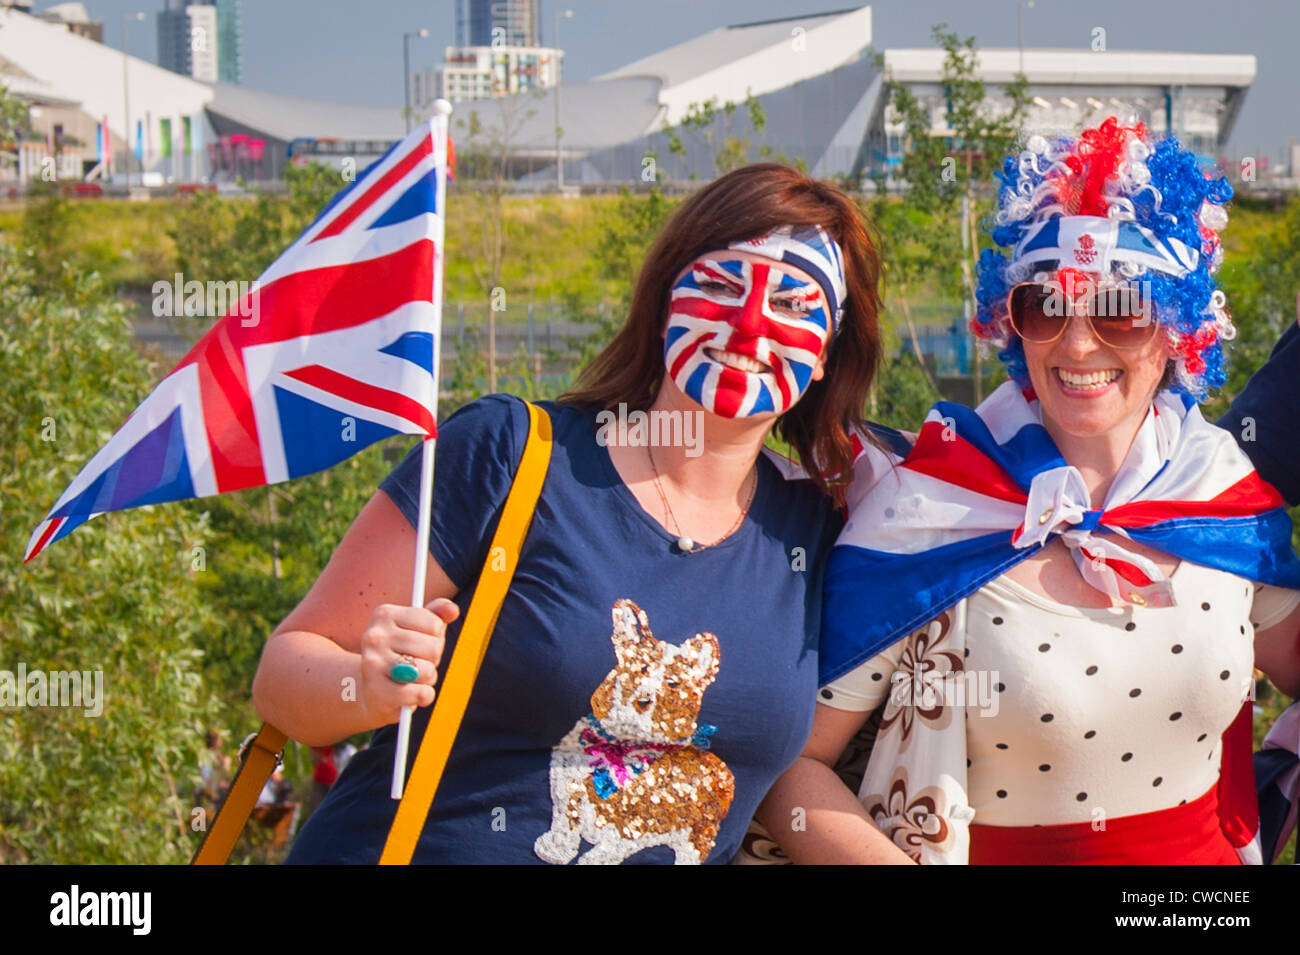 London 2012 , Stratford Olympic Park , revelers pretty young girls women females with Union Jack flag flags hat - Stock Image